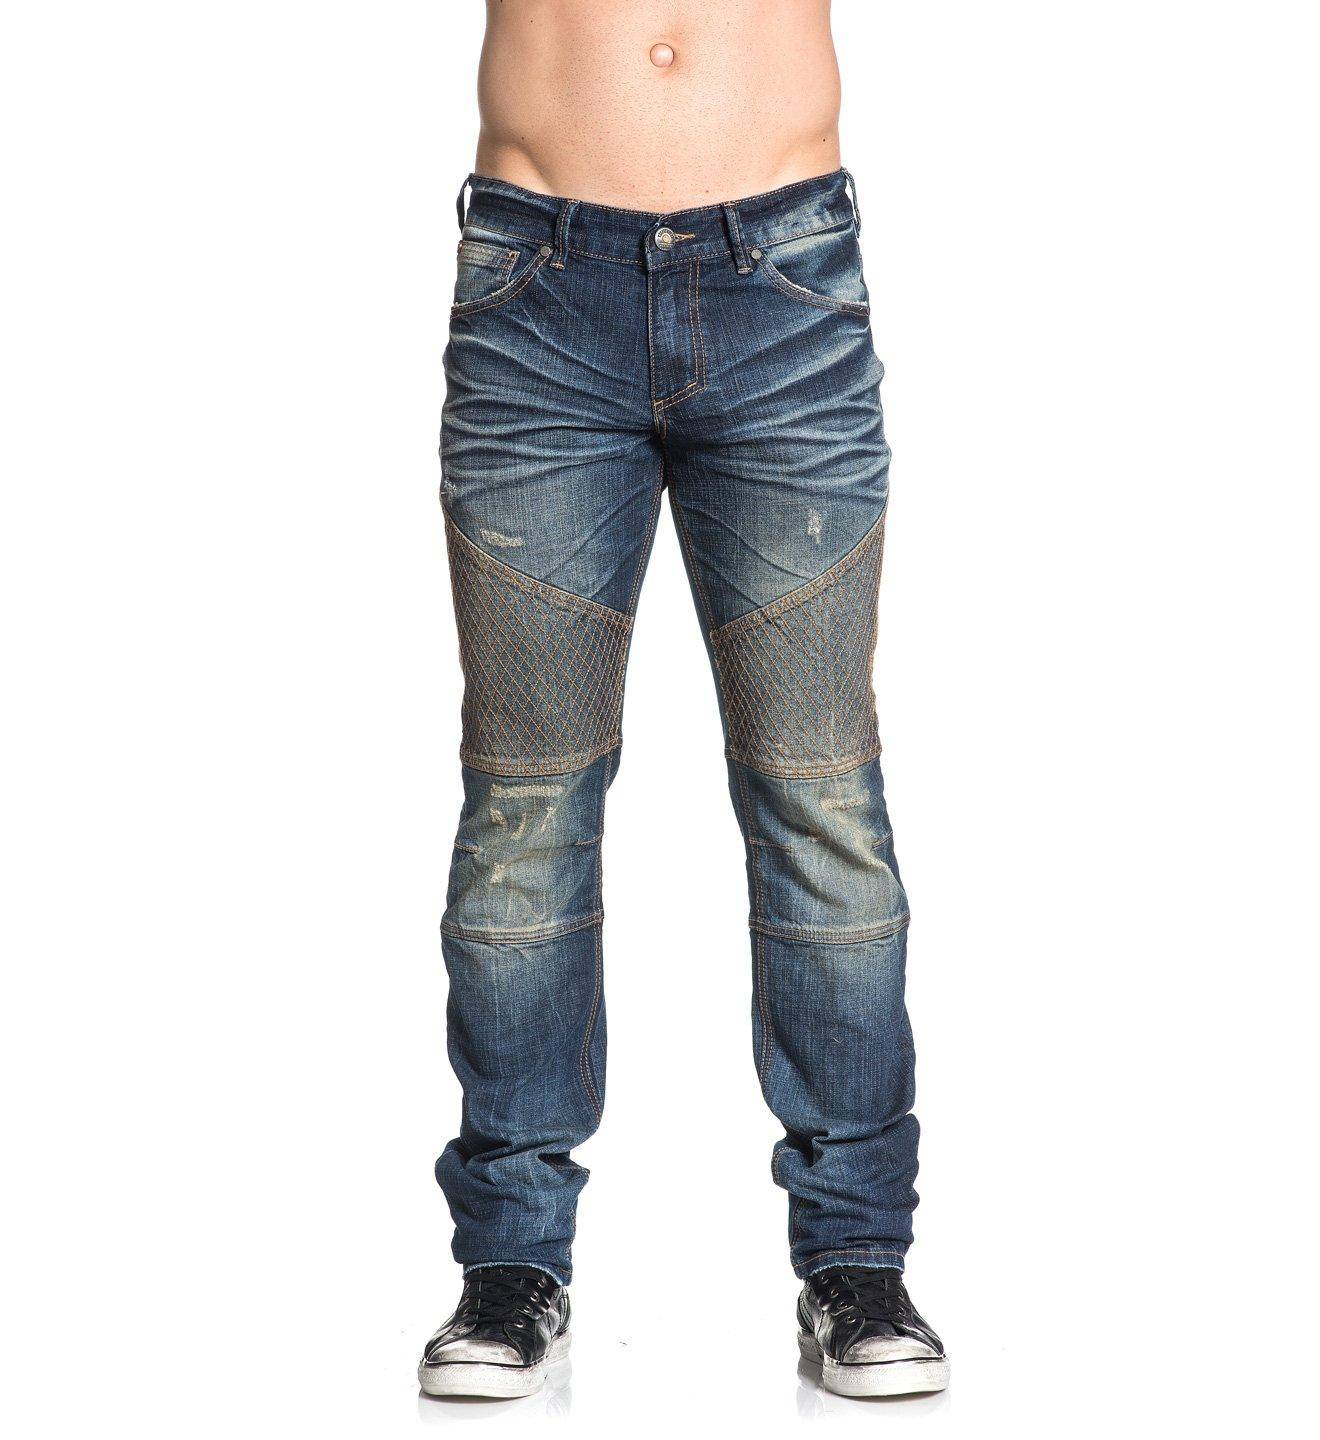 Gage Grid Malibu - Mens Denim Bottoms - Affliction Clothing